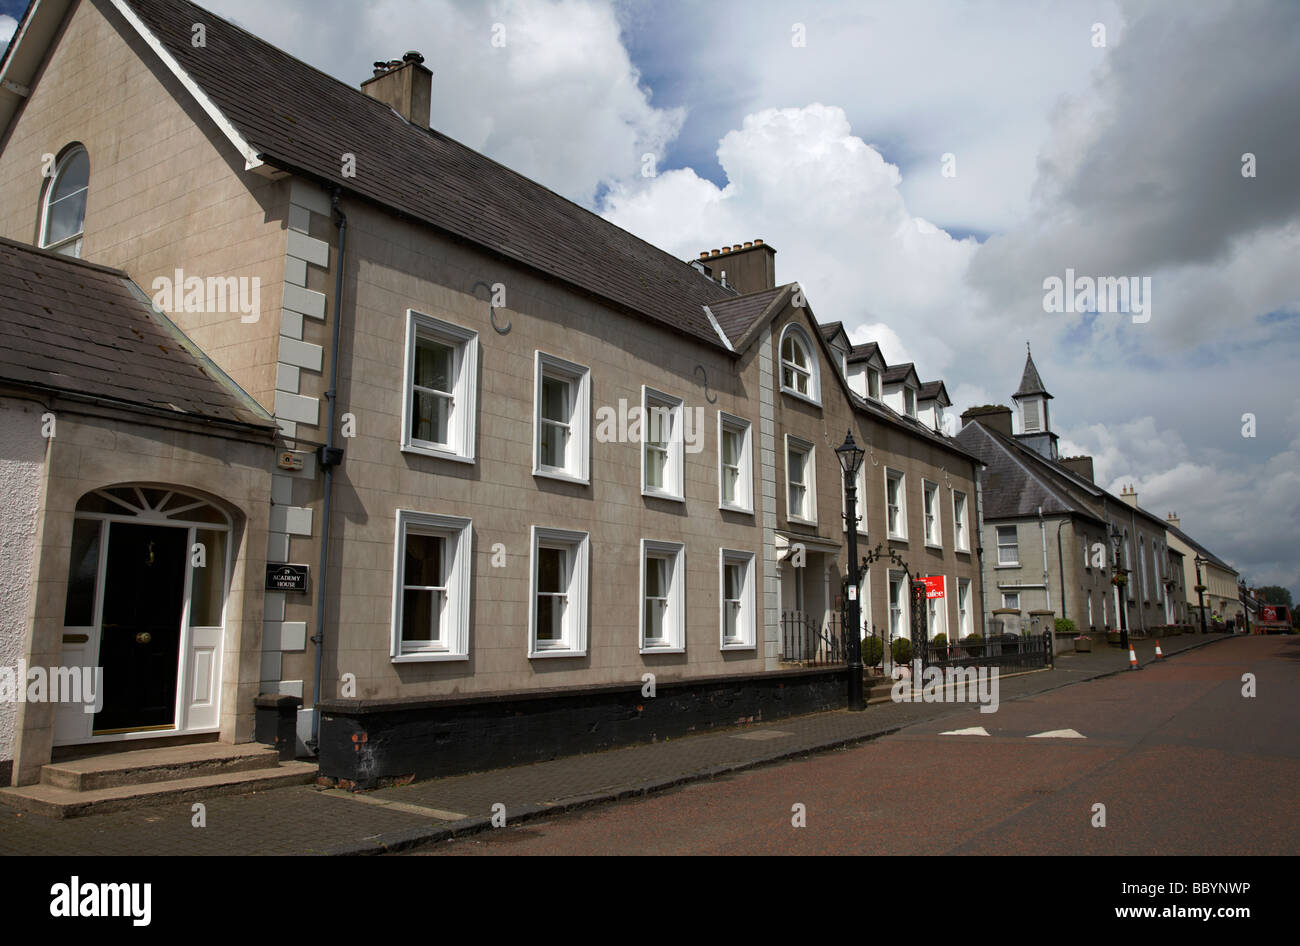 the academy house in 18th century gracehill village a moravian settlement in county antrim northern ireland uk - Stock Image